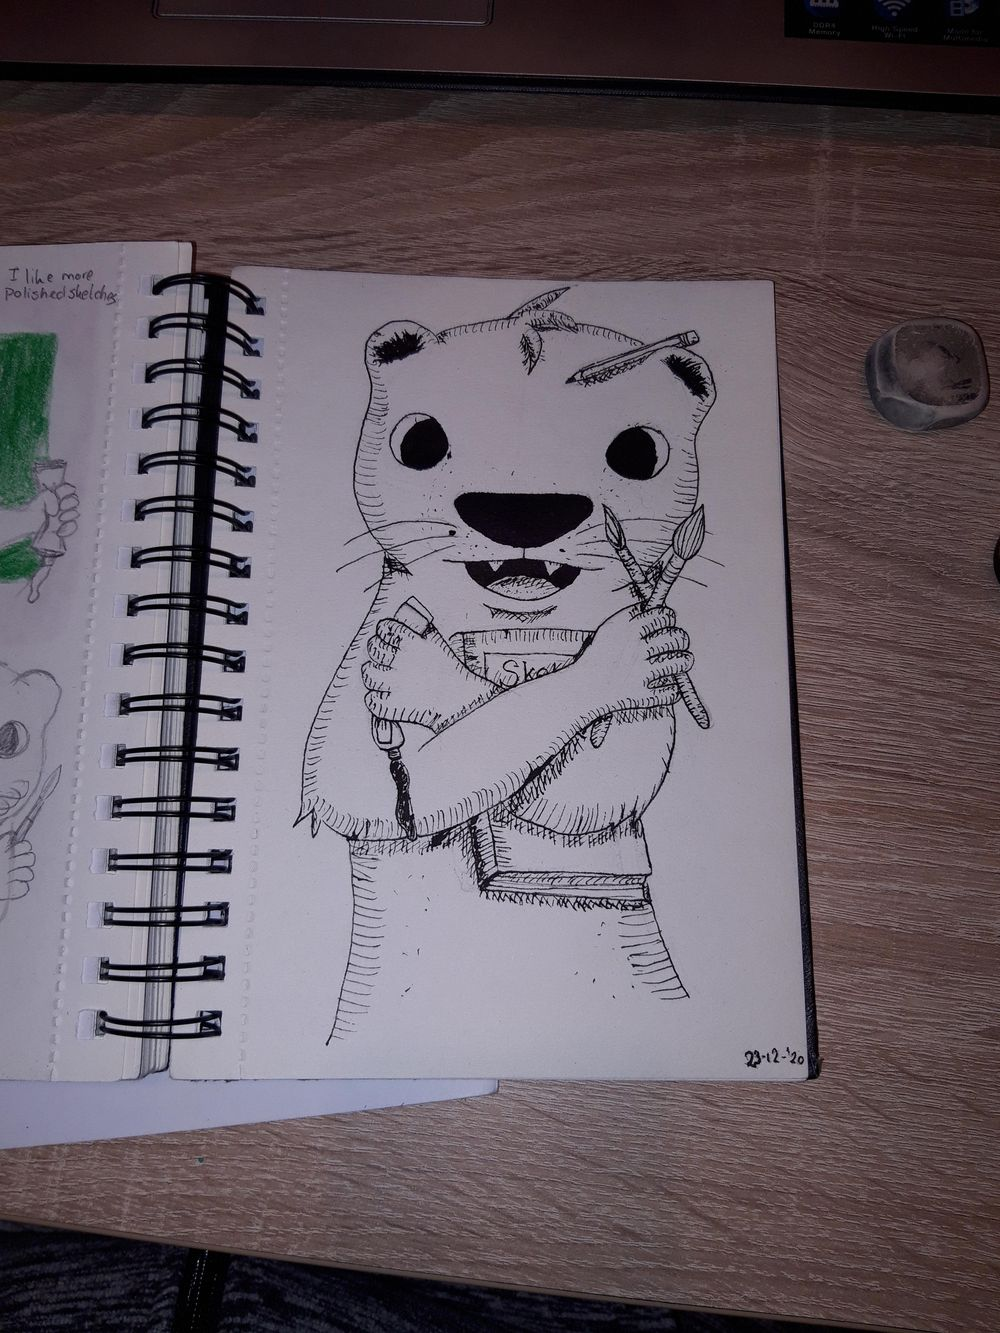 Inked creative otter - image 1 - student project